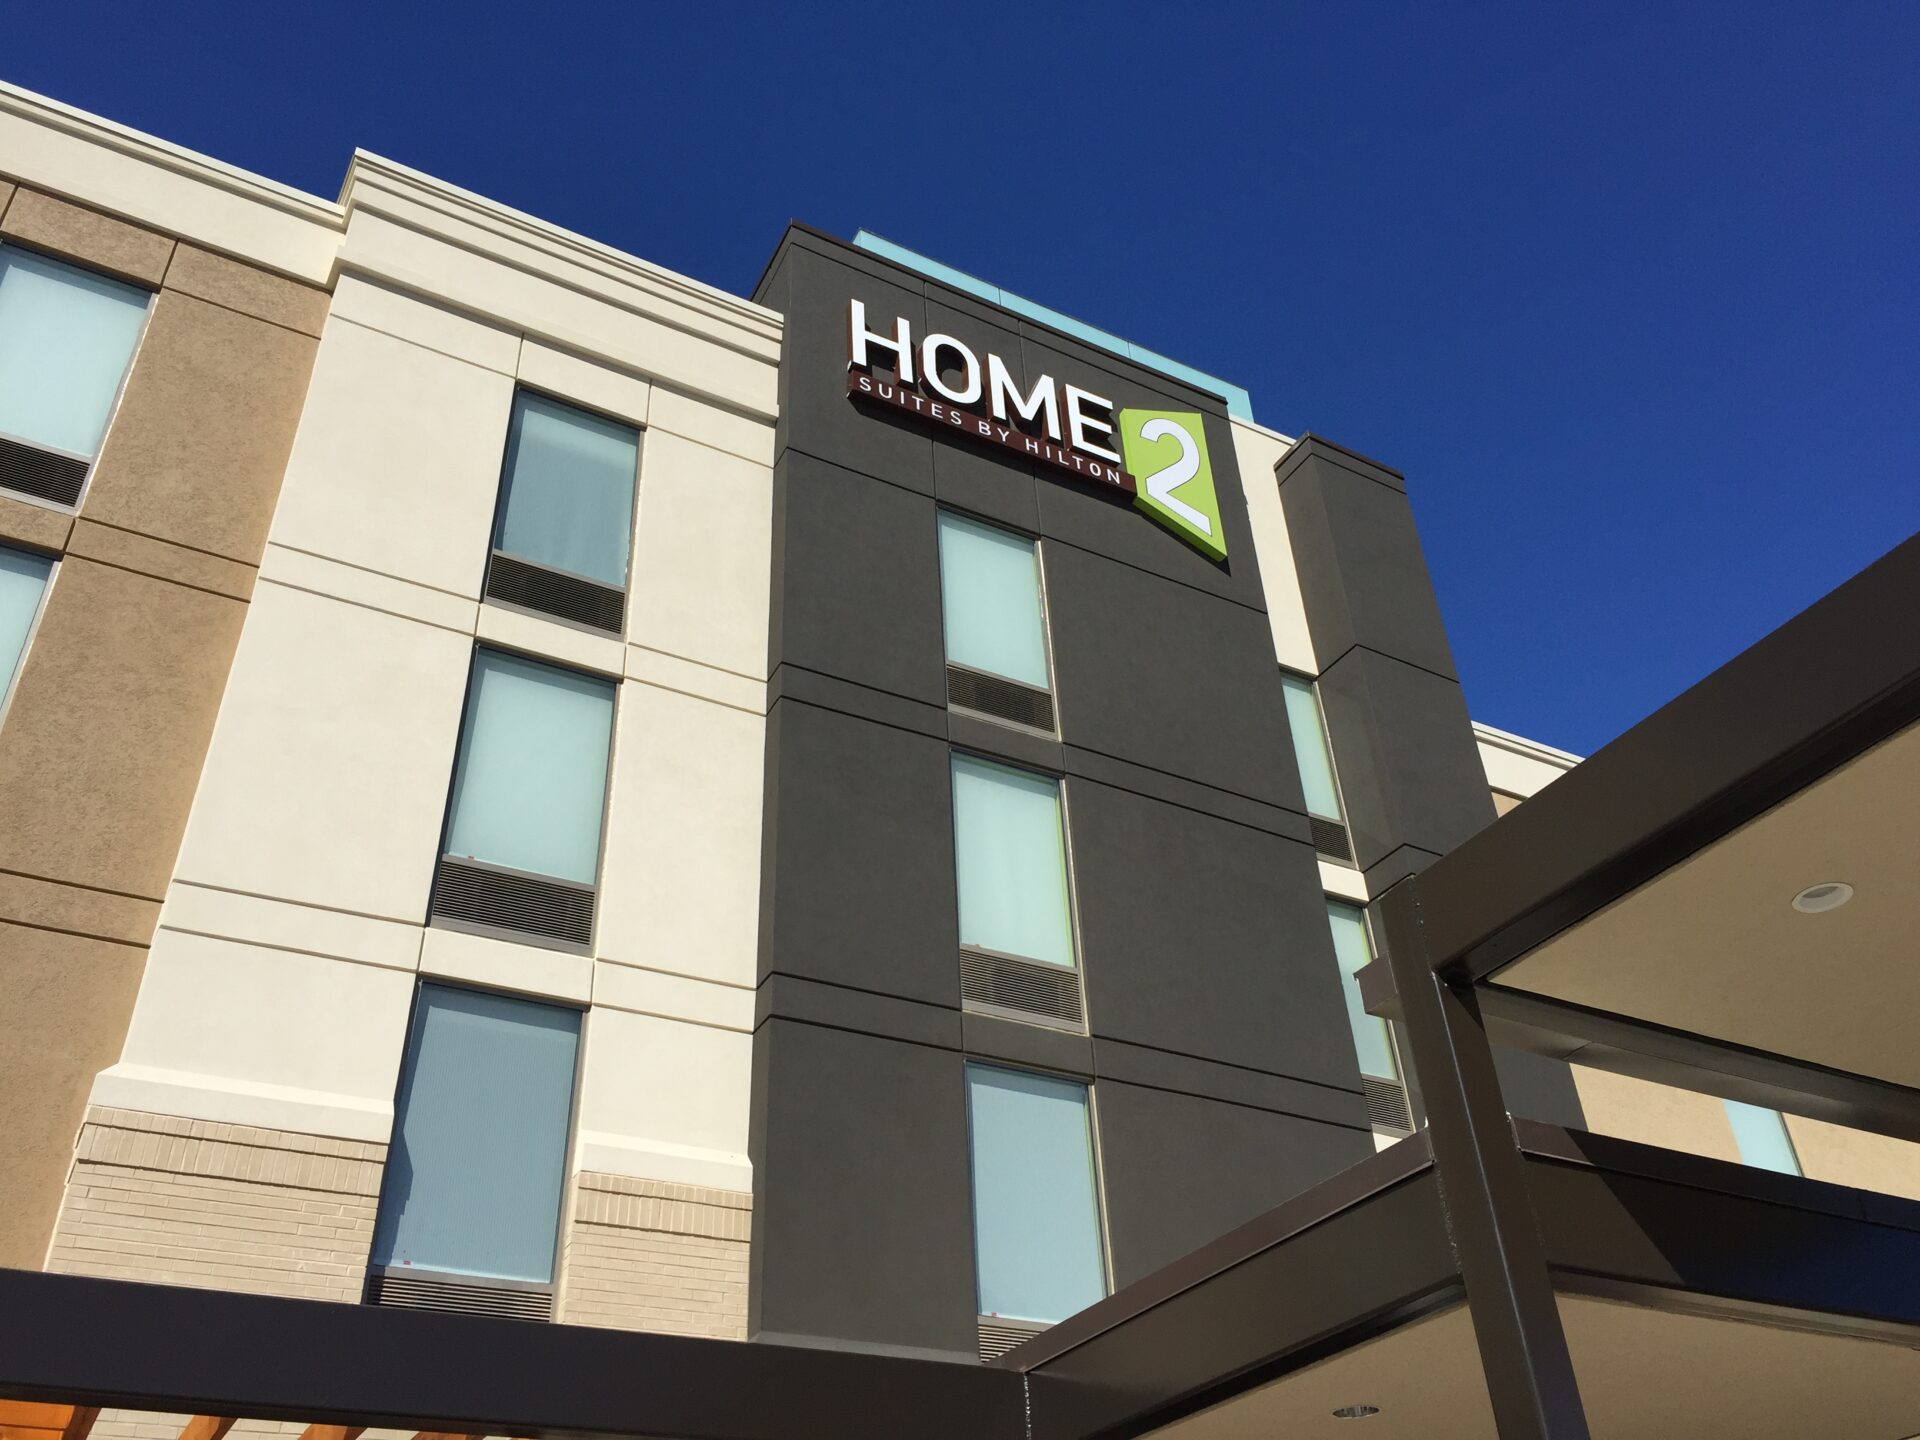 Home2 Suites By Hilton Opens In Oxford